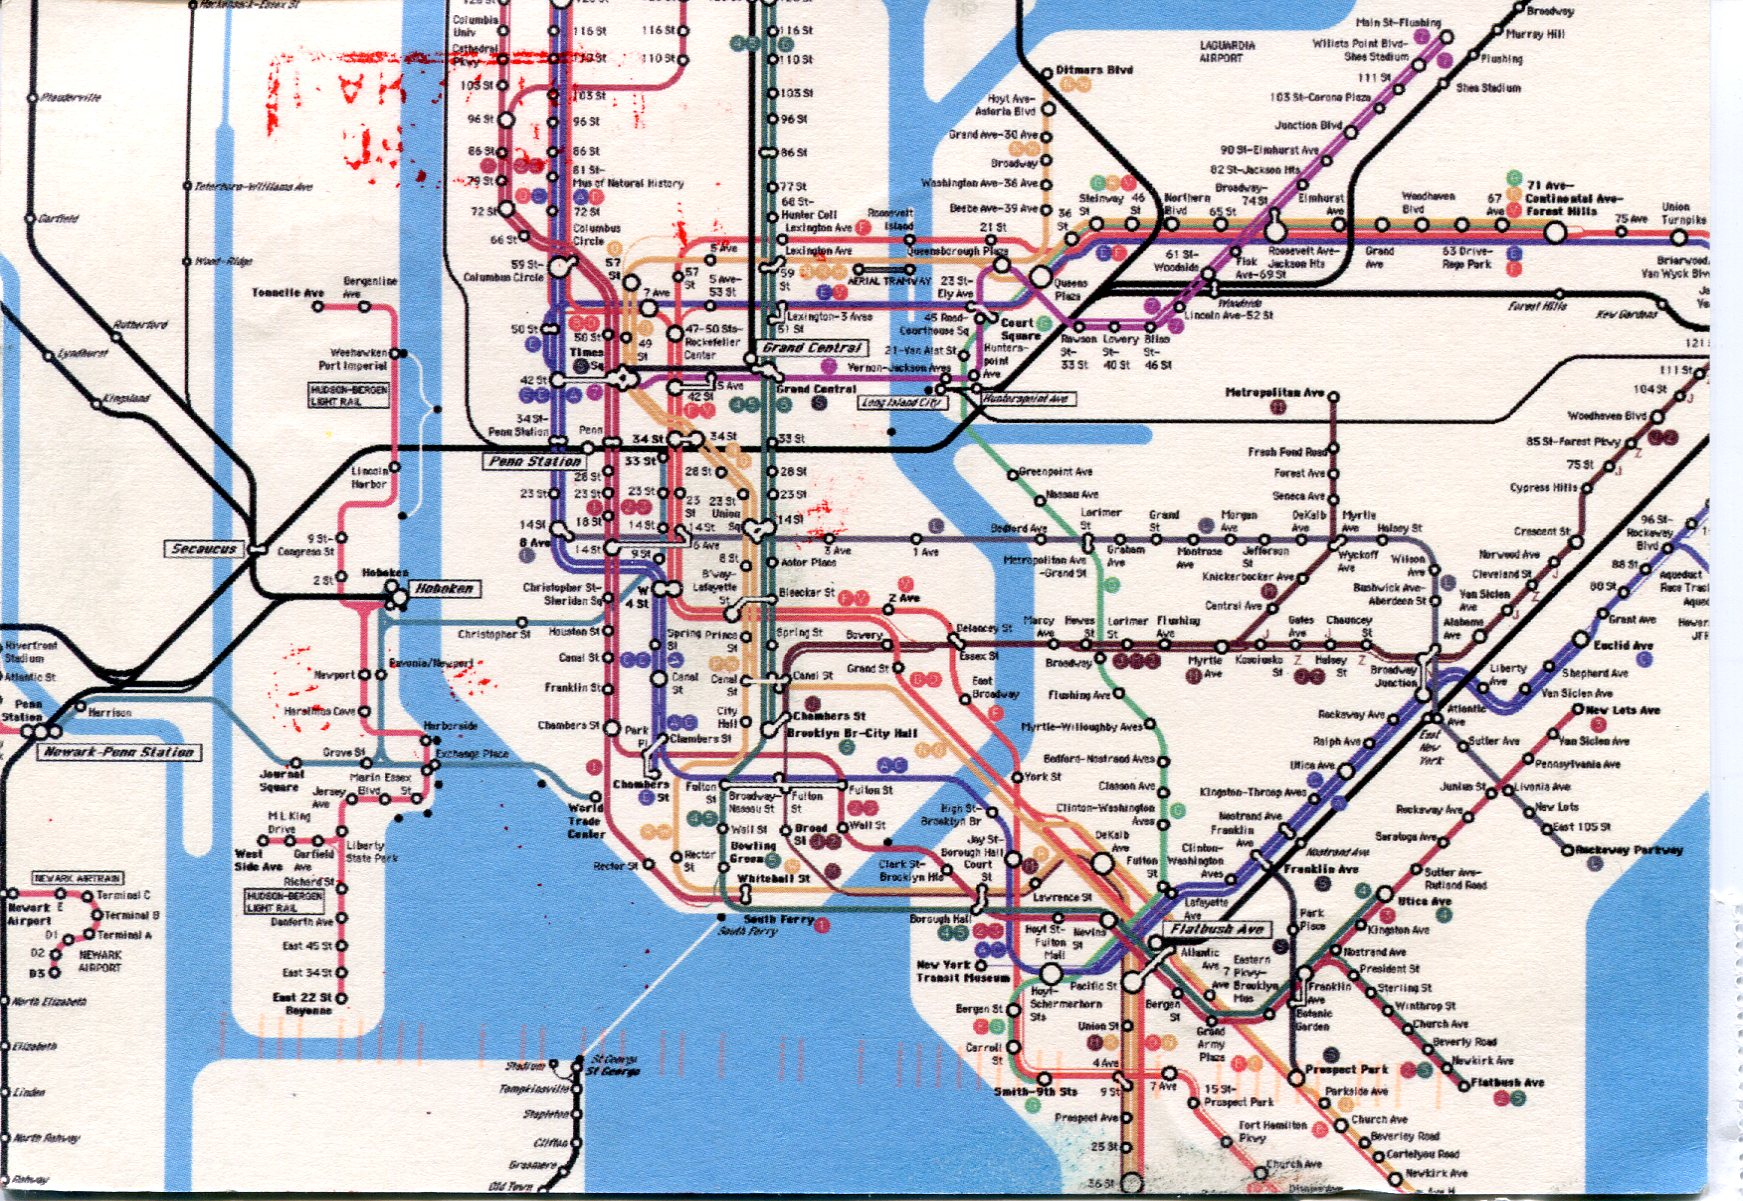 Subway Map From New Jersey To New York.New York City Subway Map Remembering Letters And Postcards